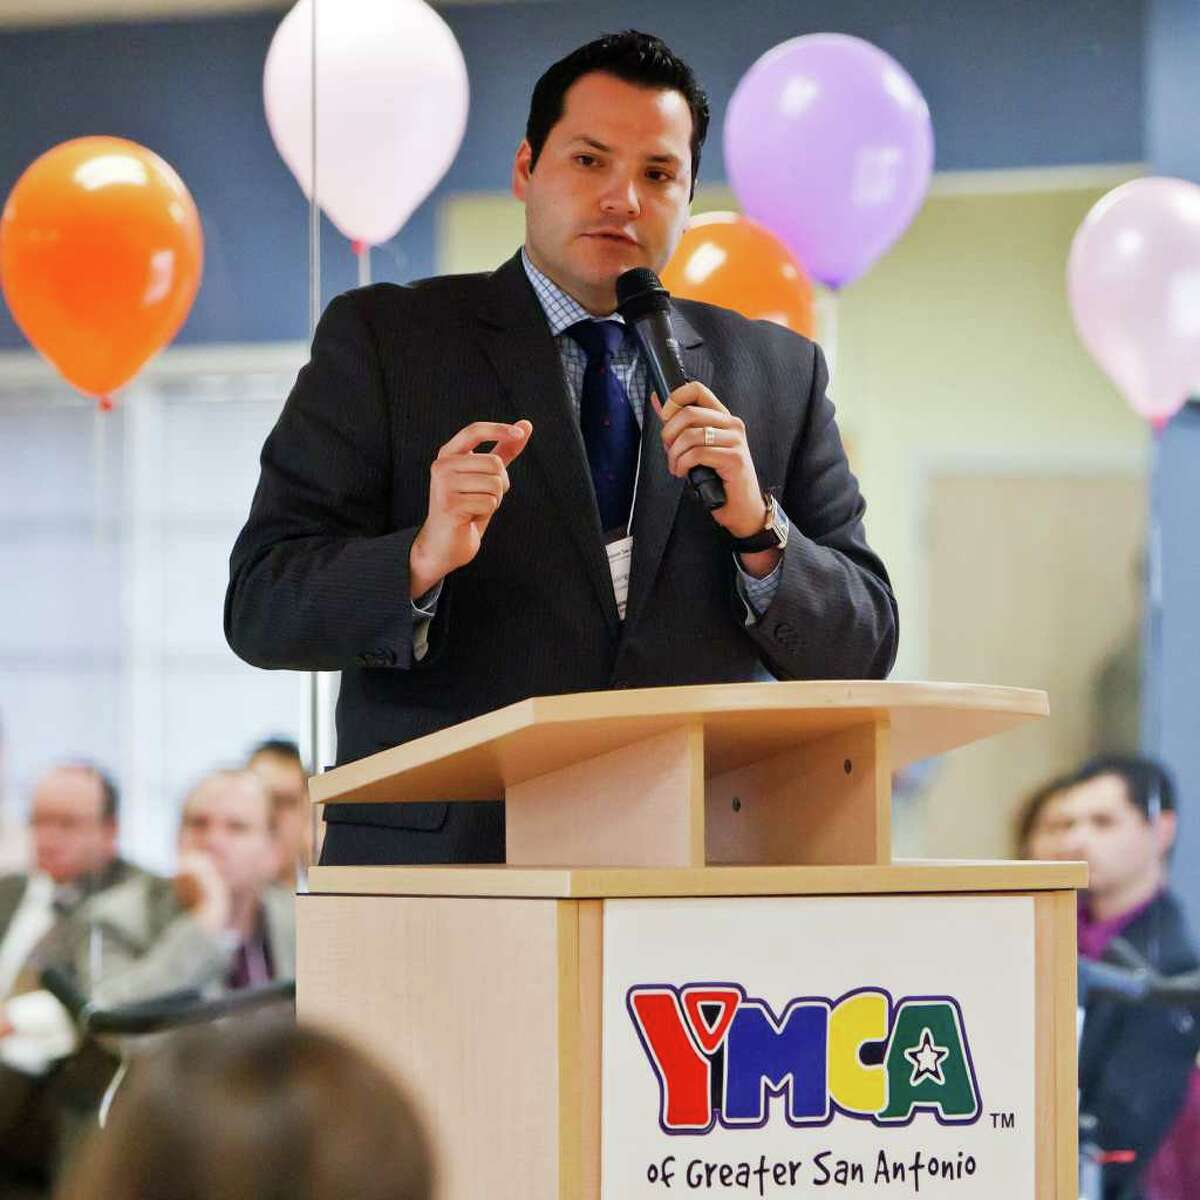 San Antonio City Councilman Justin Rodriguez speaks about issues facing the community at a